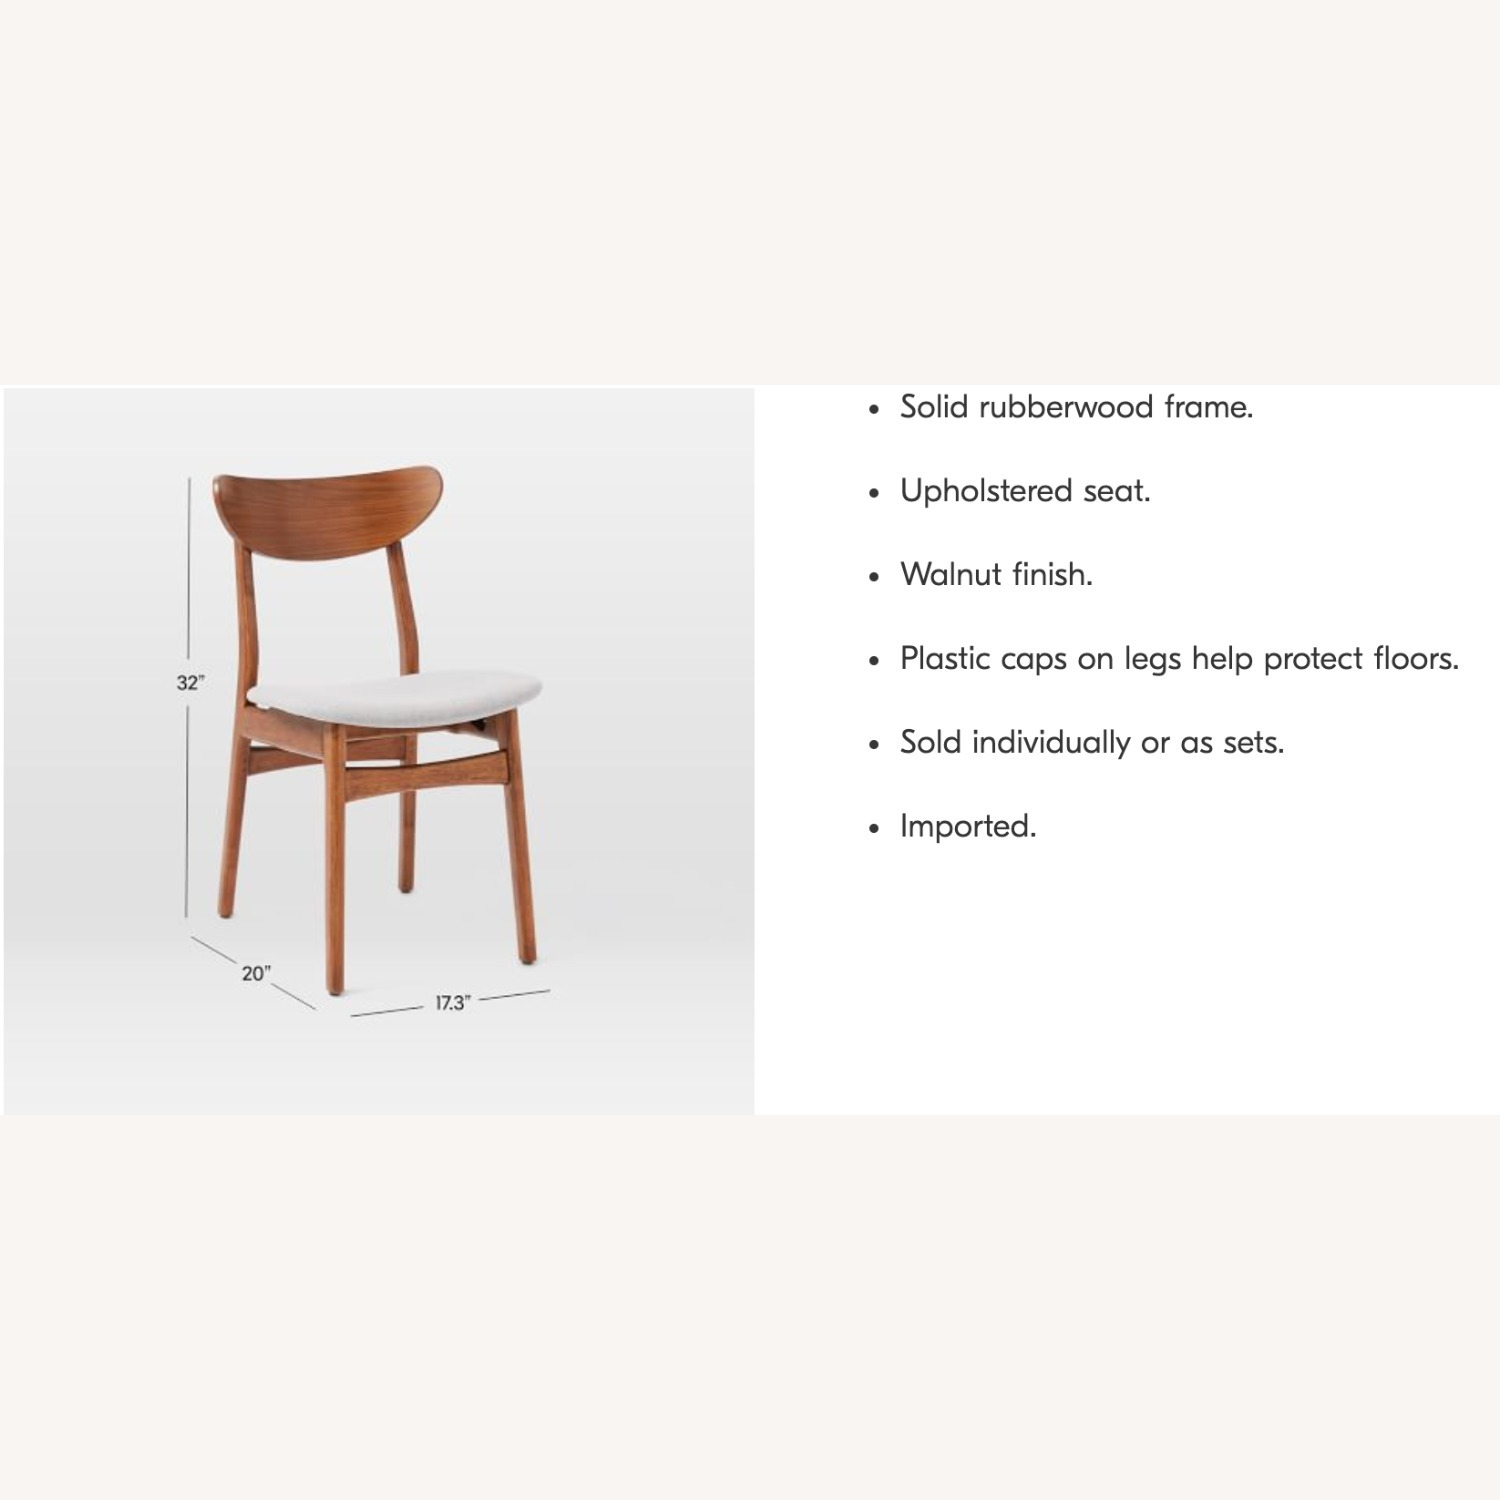 West Elm Classic Caf Upholstered Dining Chair- Set of 2 - image-6